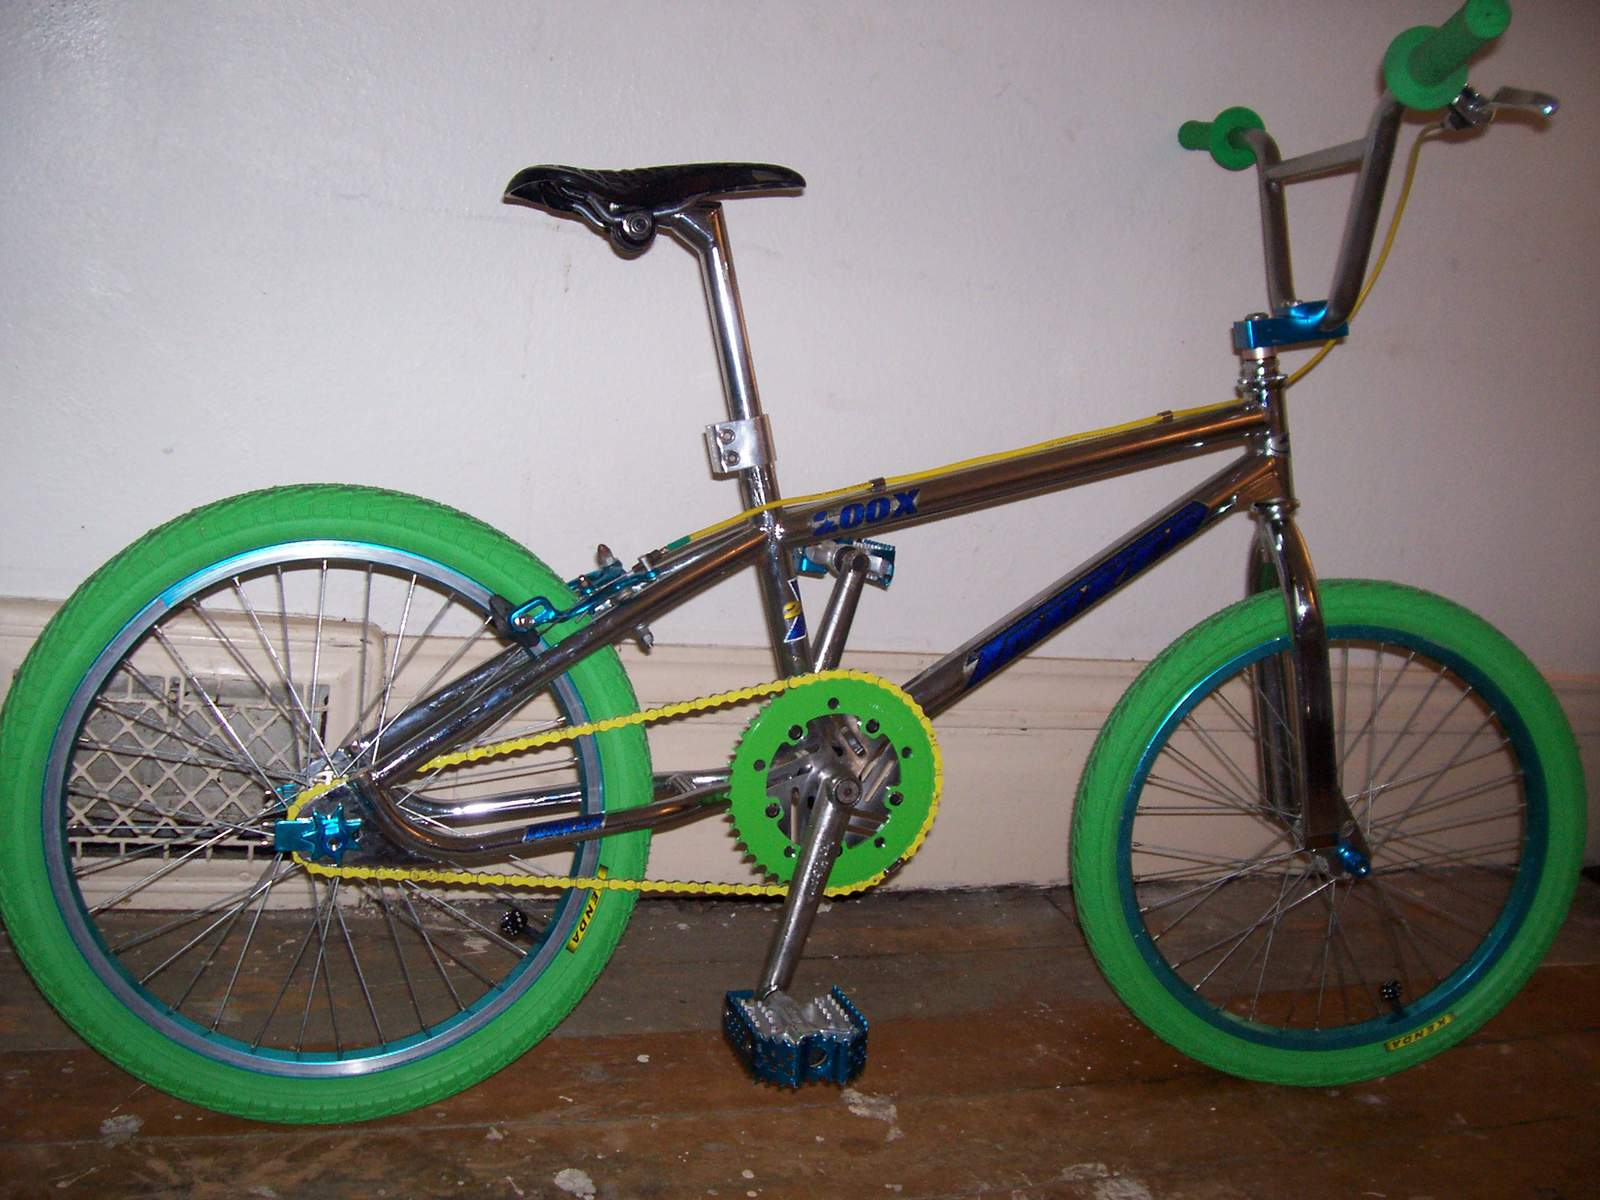 http://uploads.bmxmuseum.com/user-images/61851/100_7241585e7a6d6958a80ace80.jpg